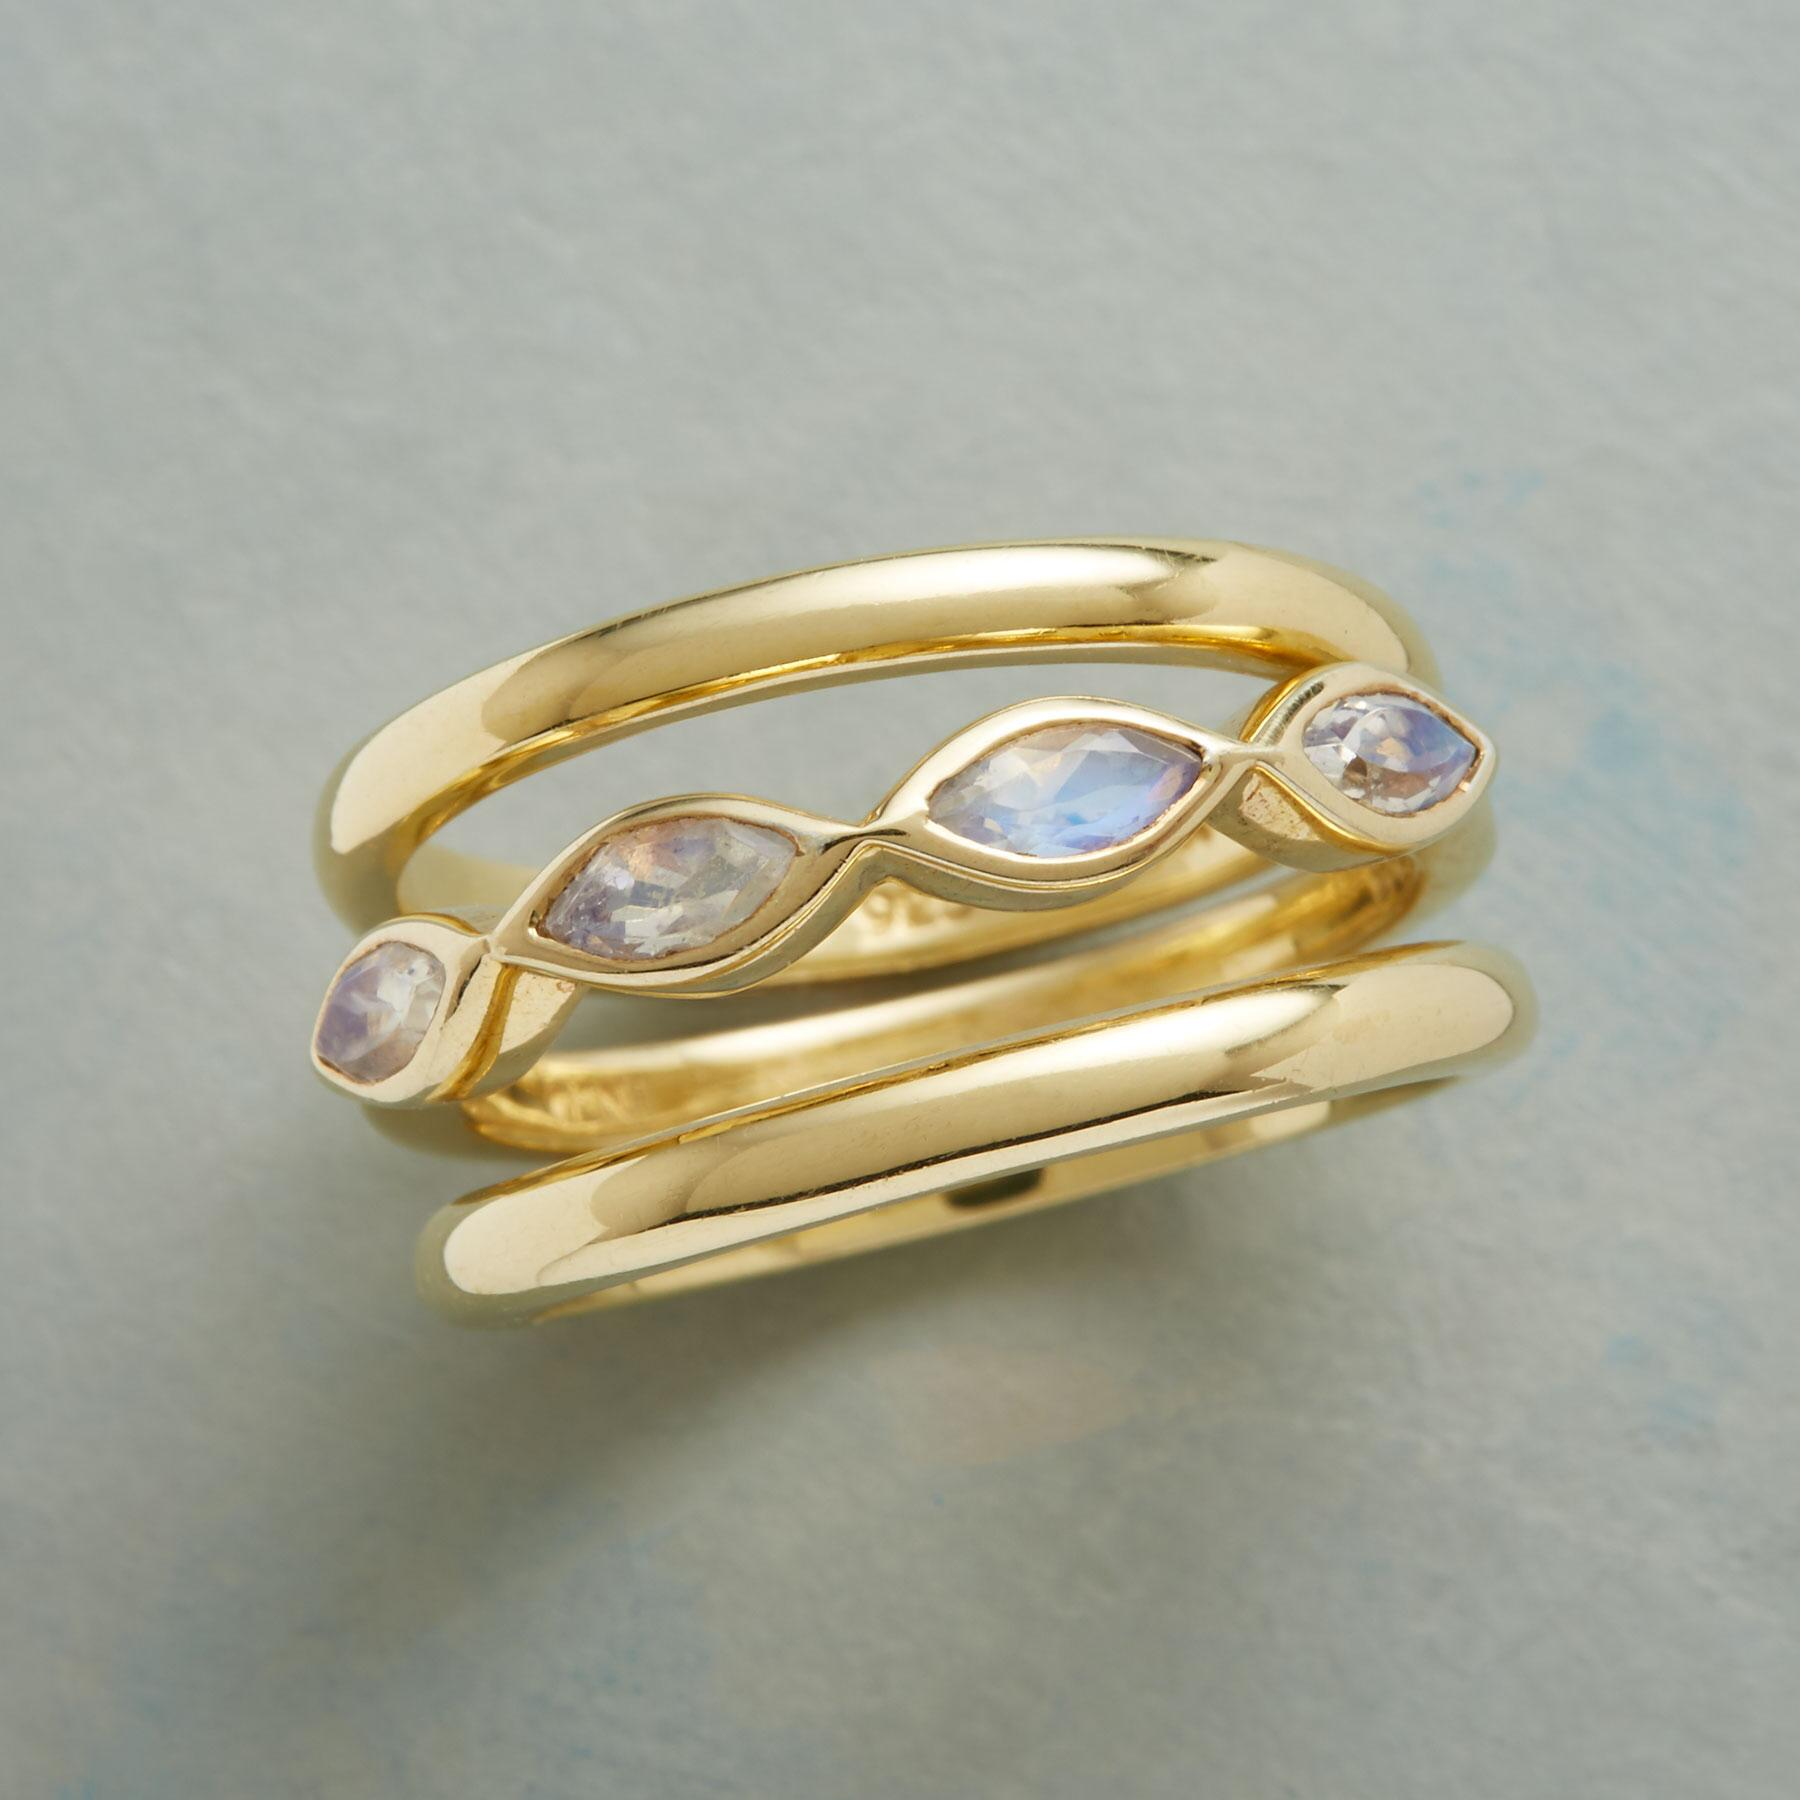 MOONSTONE IN THE MIDDLE RING TRIO: View 1